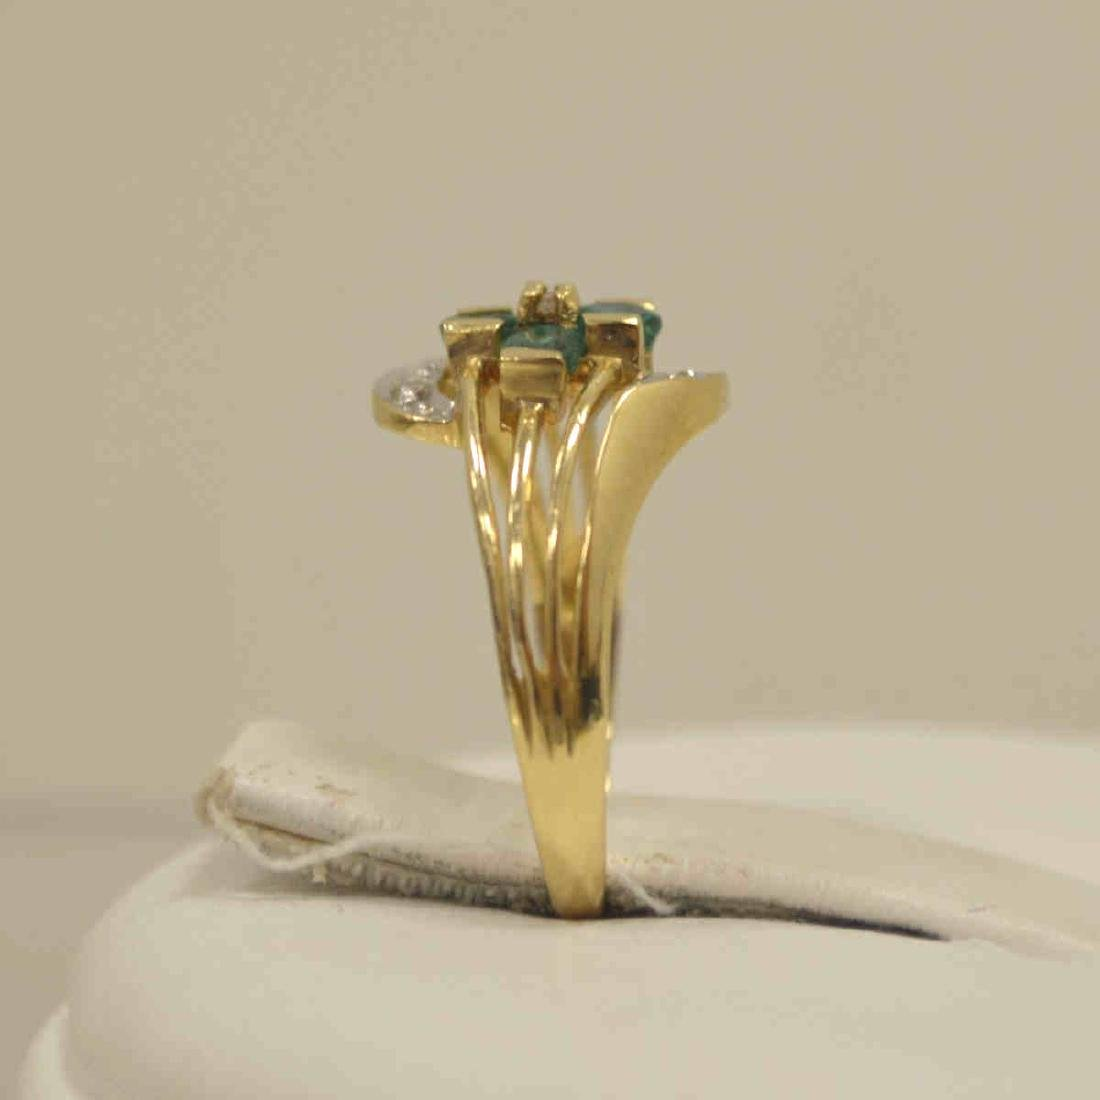 10kt yellow gold emerald and diamond ring - 4